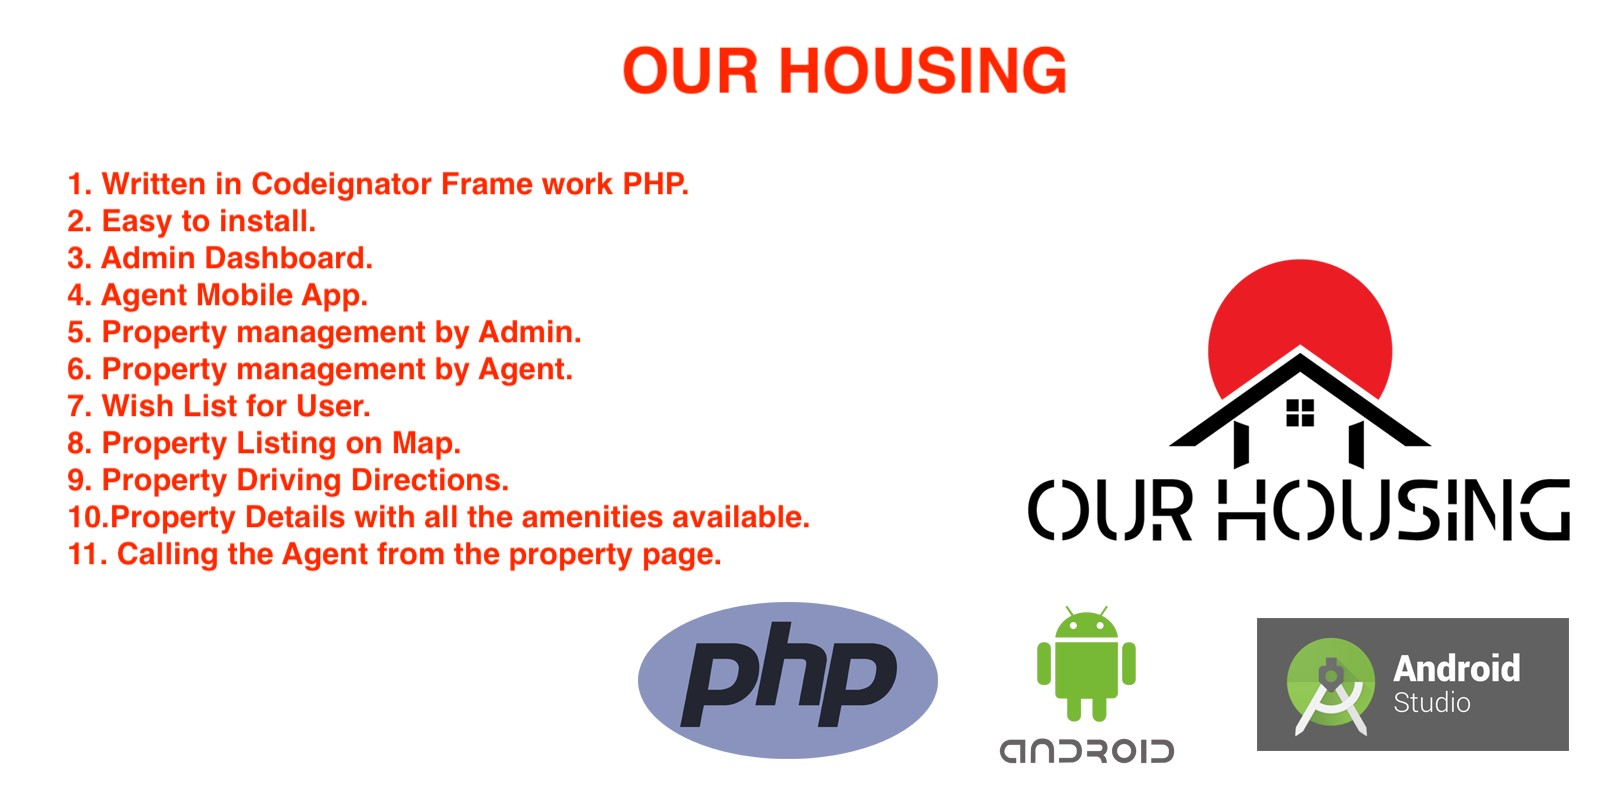 Our Housing - Real Estate Portal Android